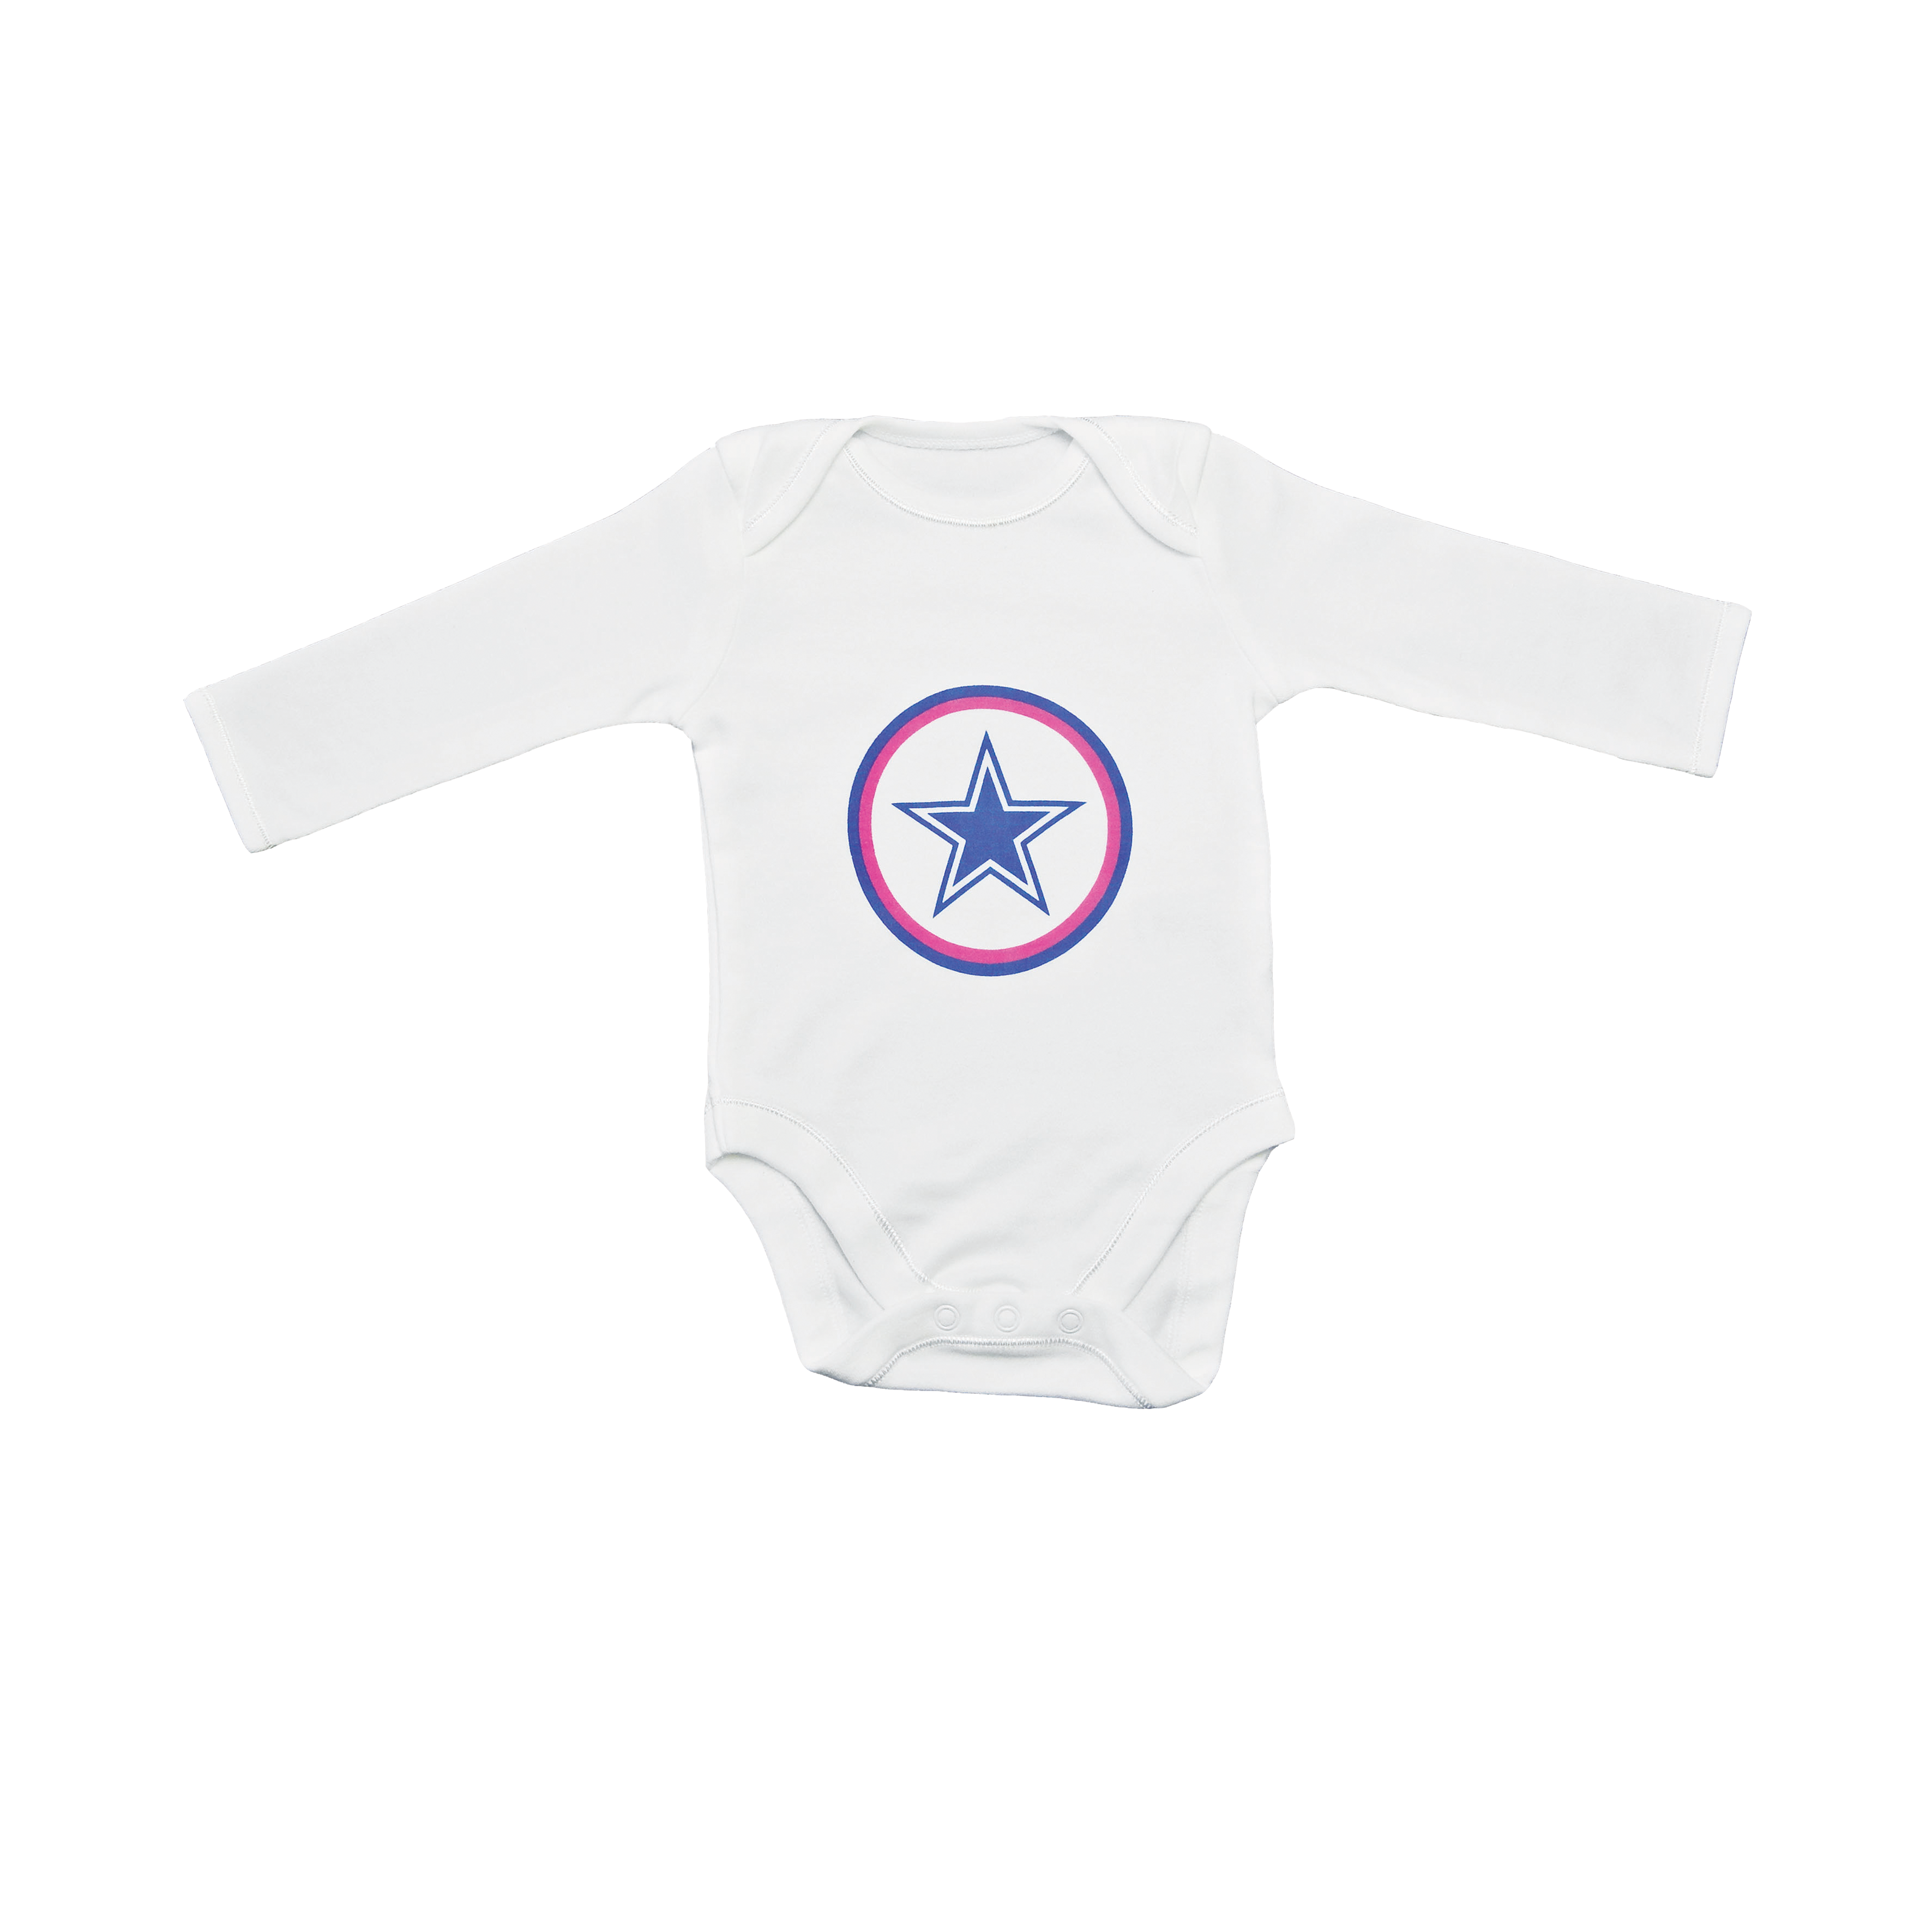 Baby bodysuit star